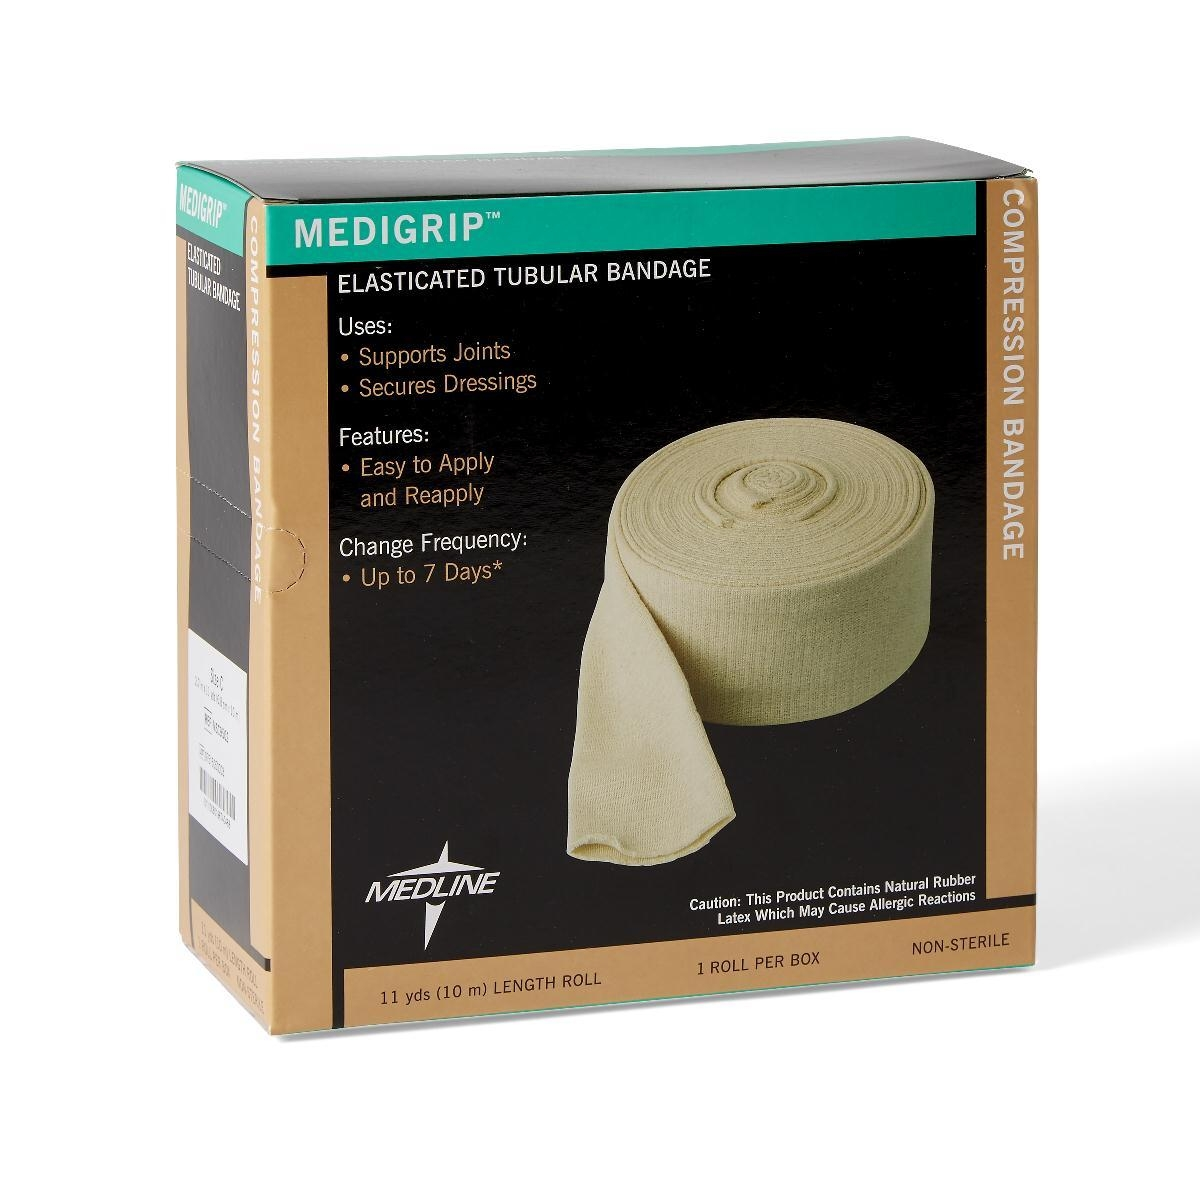 Bandage Tubular Elst Medigrip Size D - Msc9503 - Medical Tapes Wound Care Bages-netting MSC9503